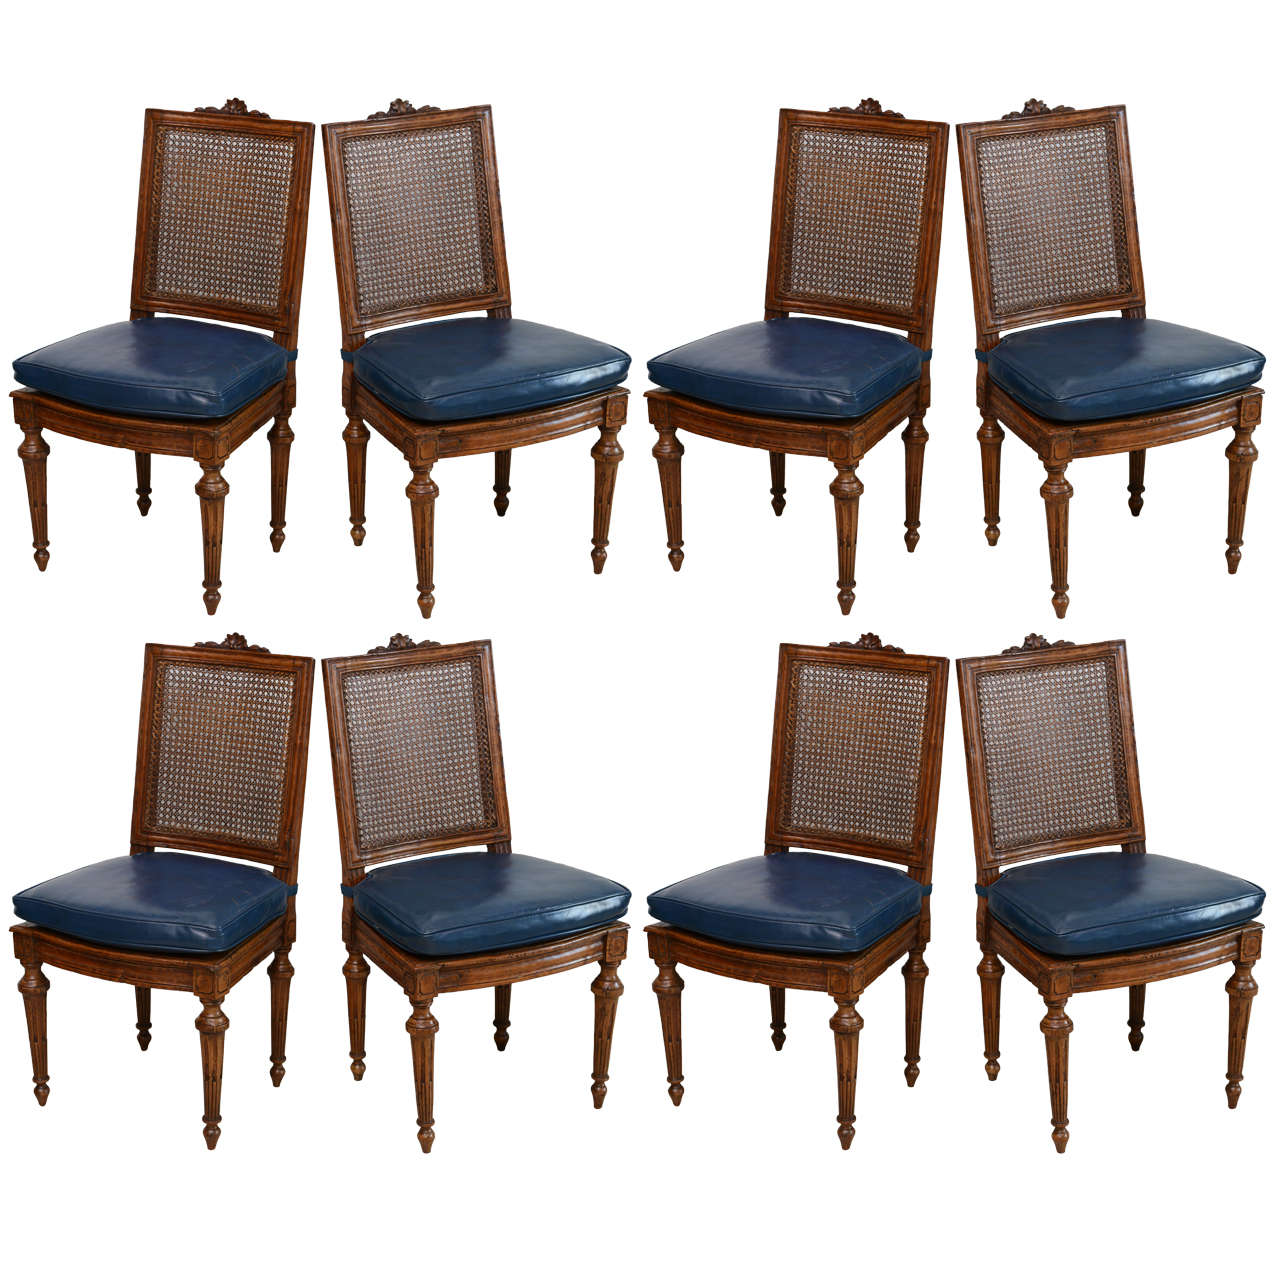 Set Of Eight Louis XVI Beechwood Dining Chairs, Late 18th Century For Sale